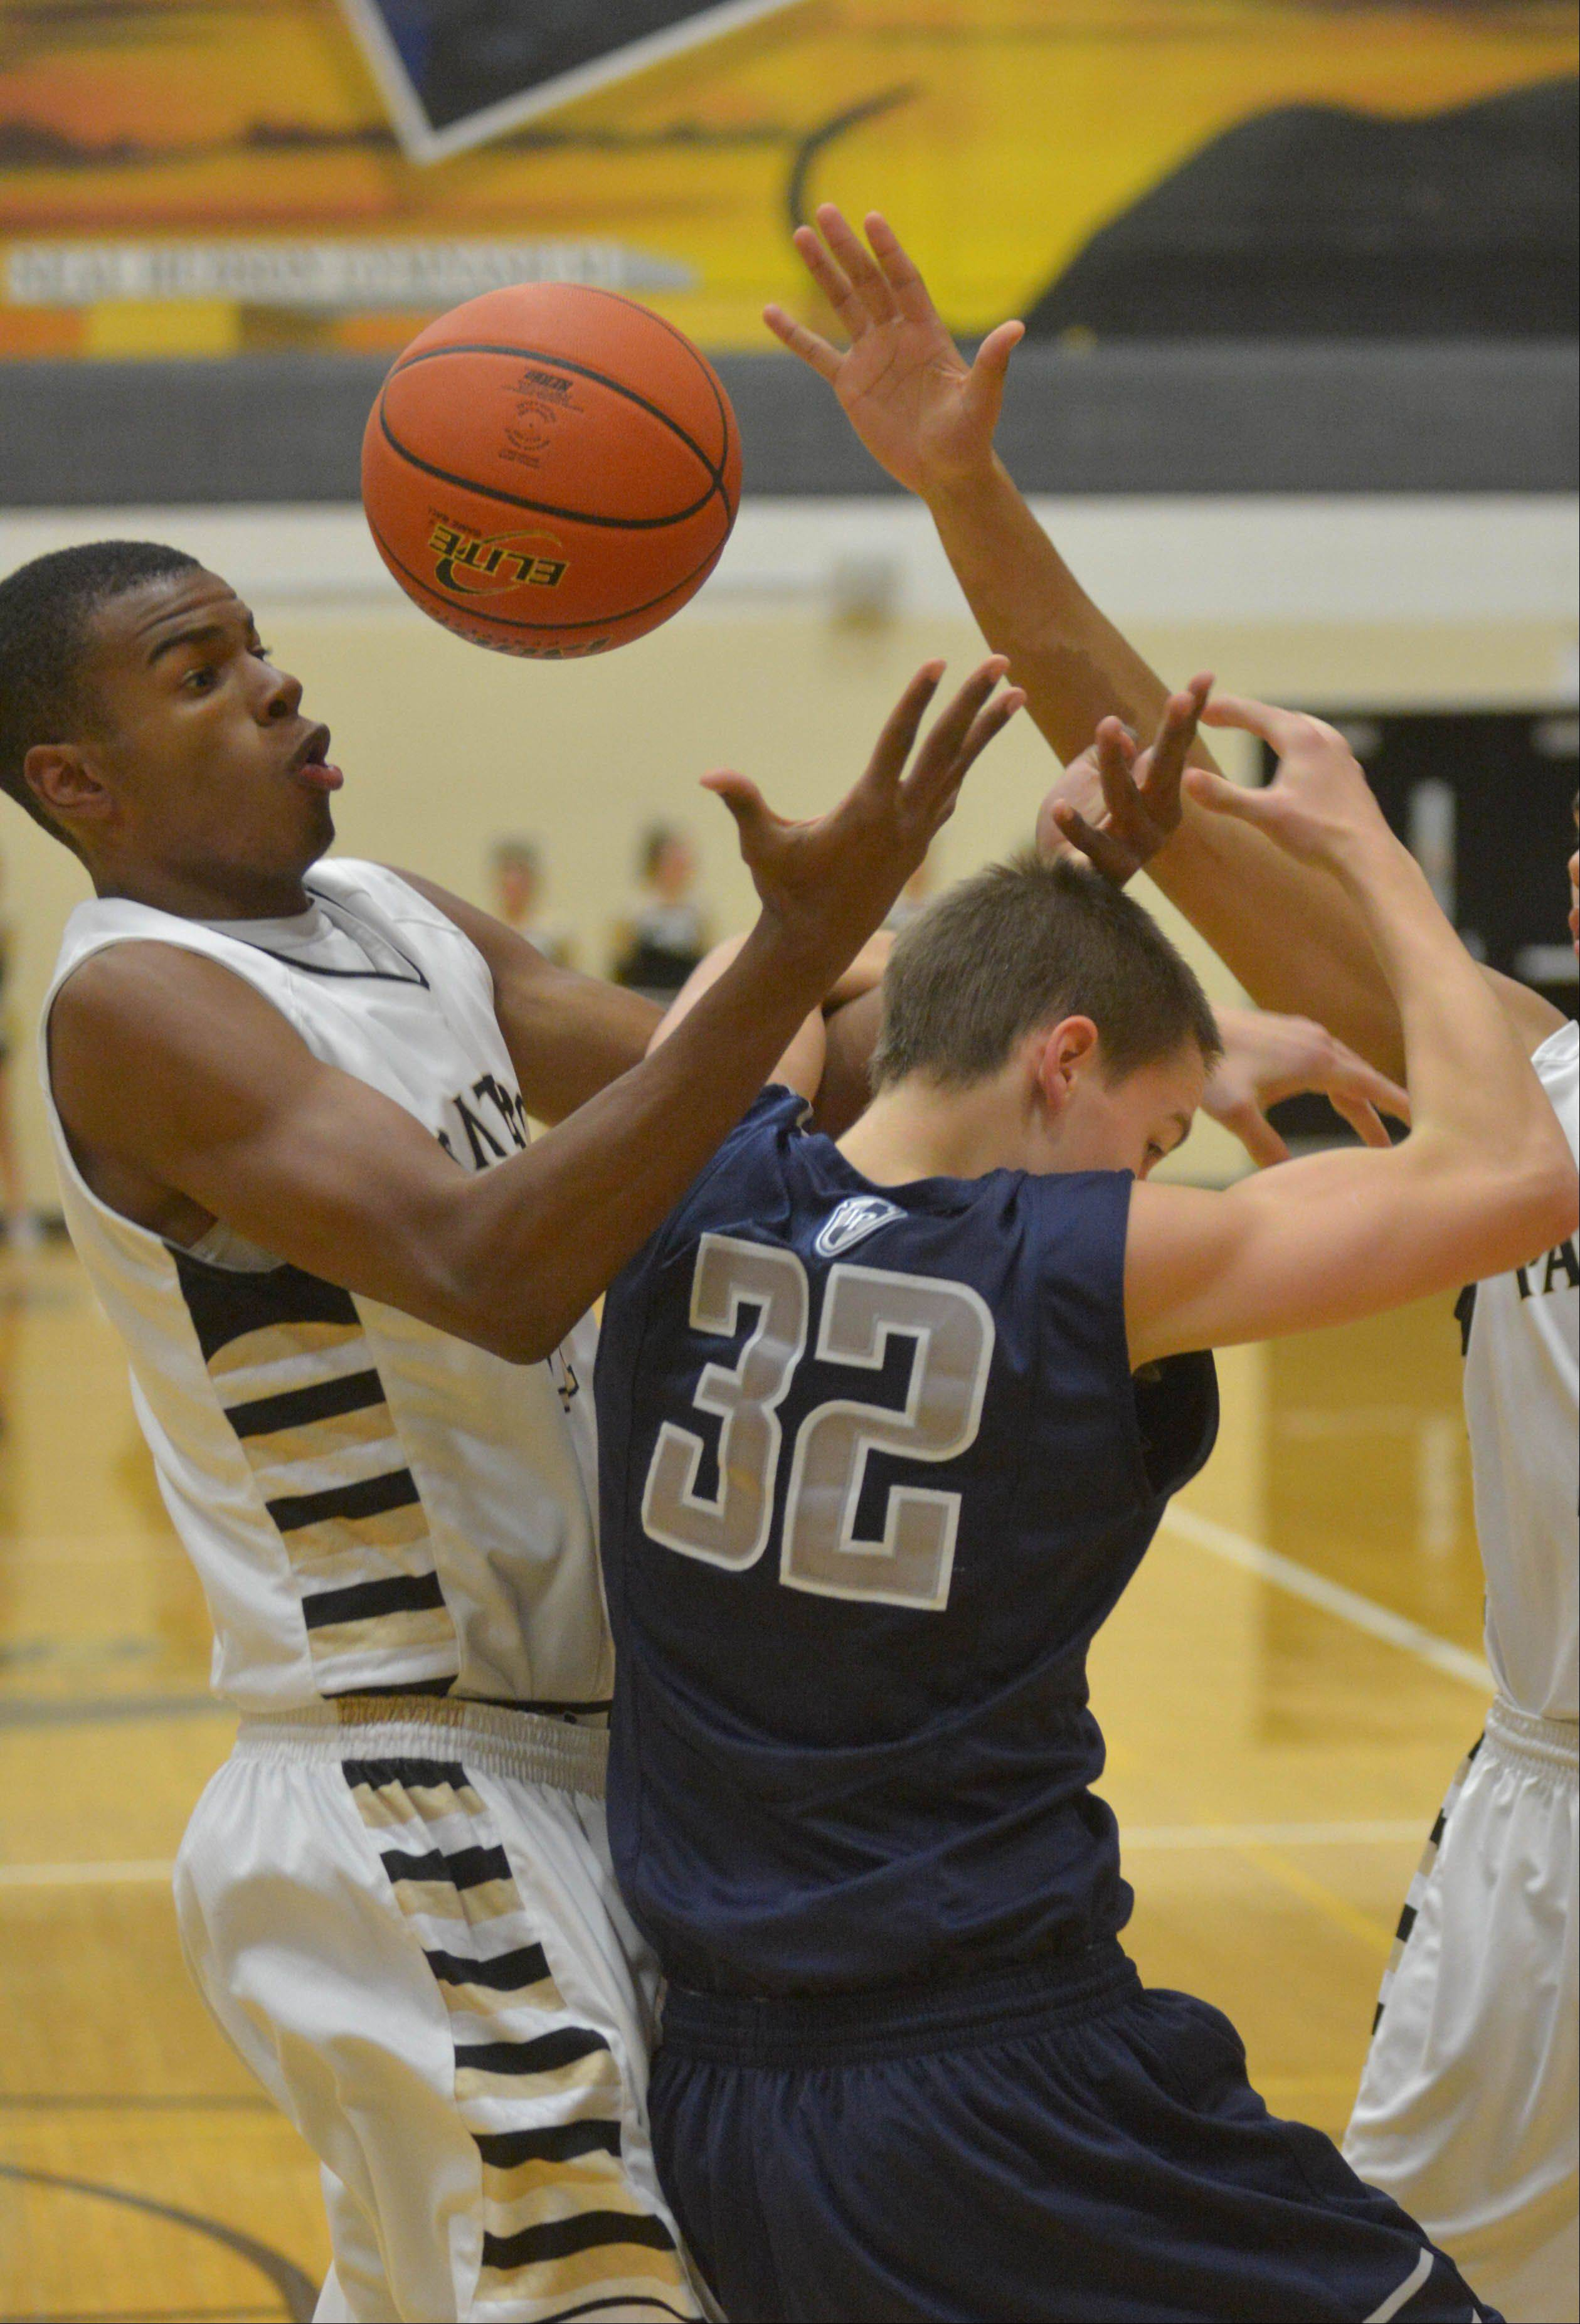 Chip Flanigan of Glenbard North and Connor Vance of Lake Park go for a rebound during the Lake Park at Glenbard North boys basketball game Friday.